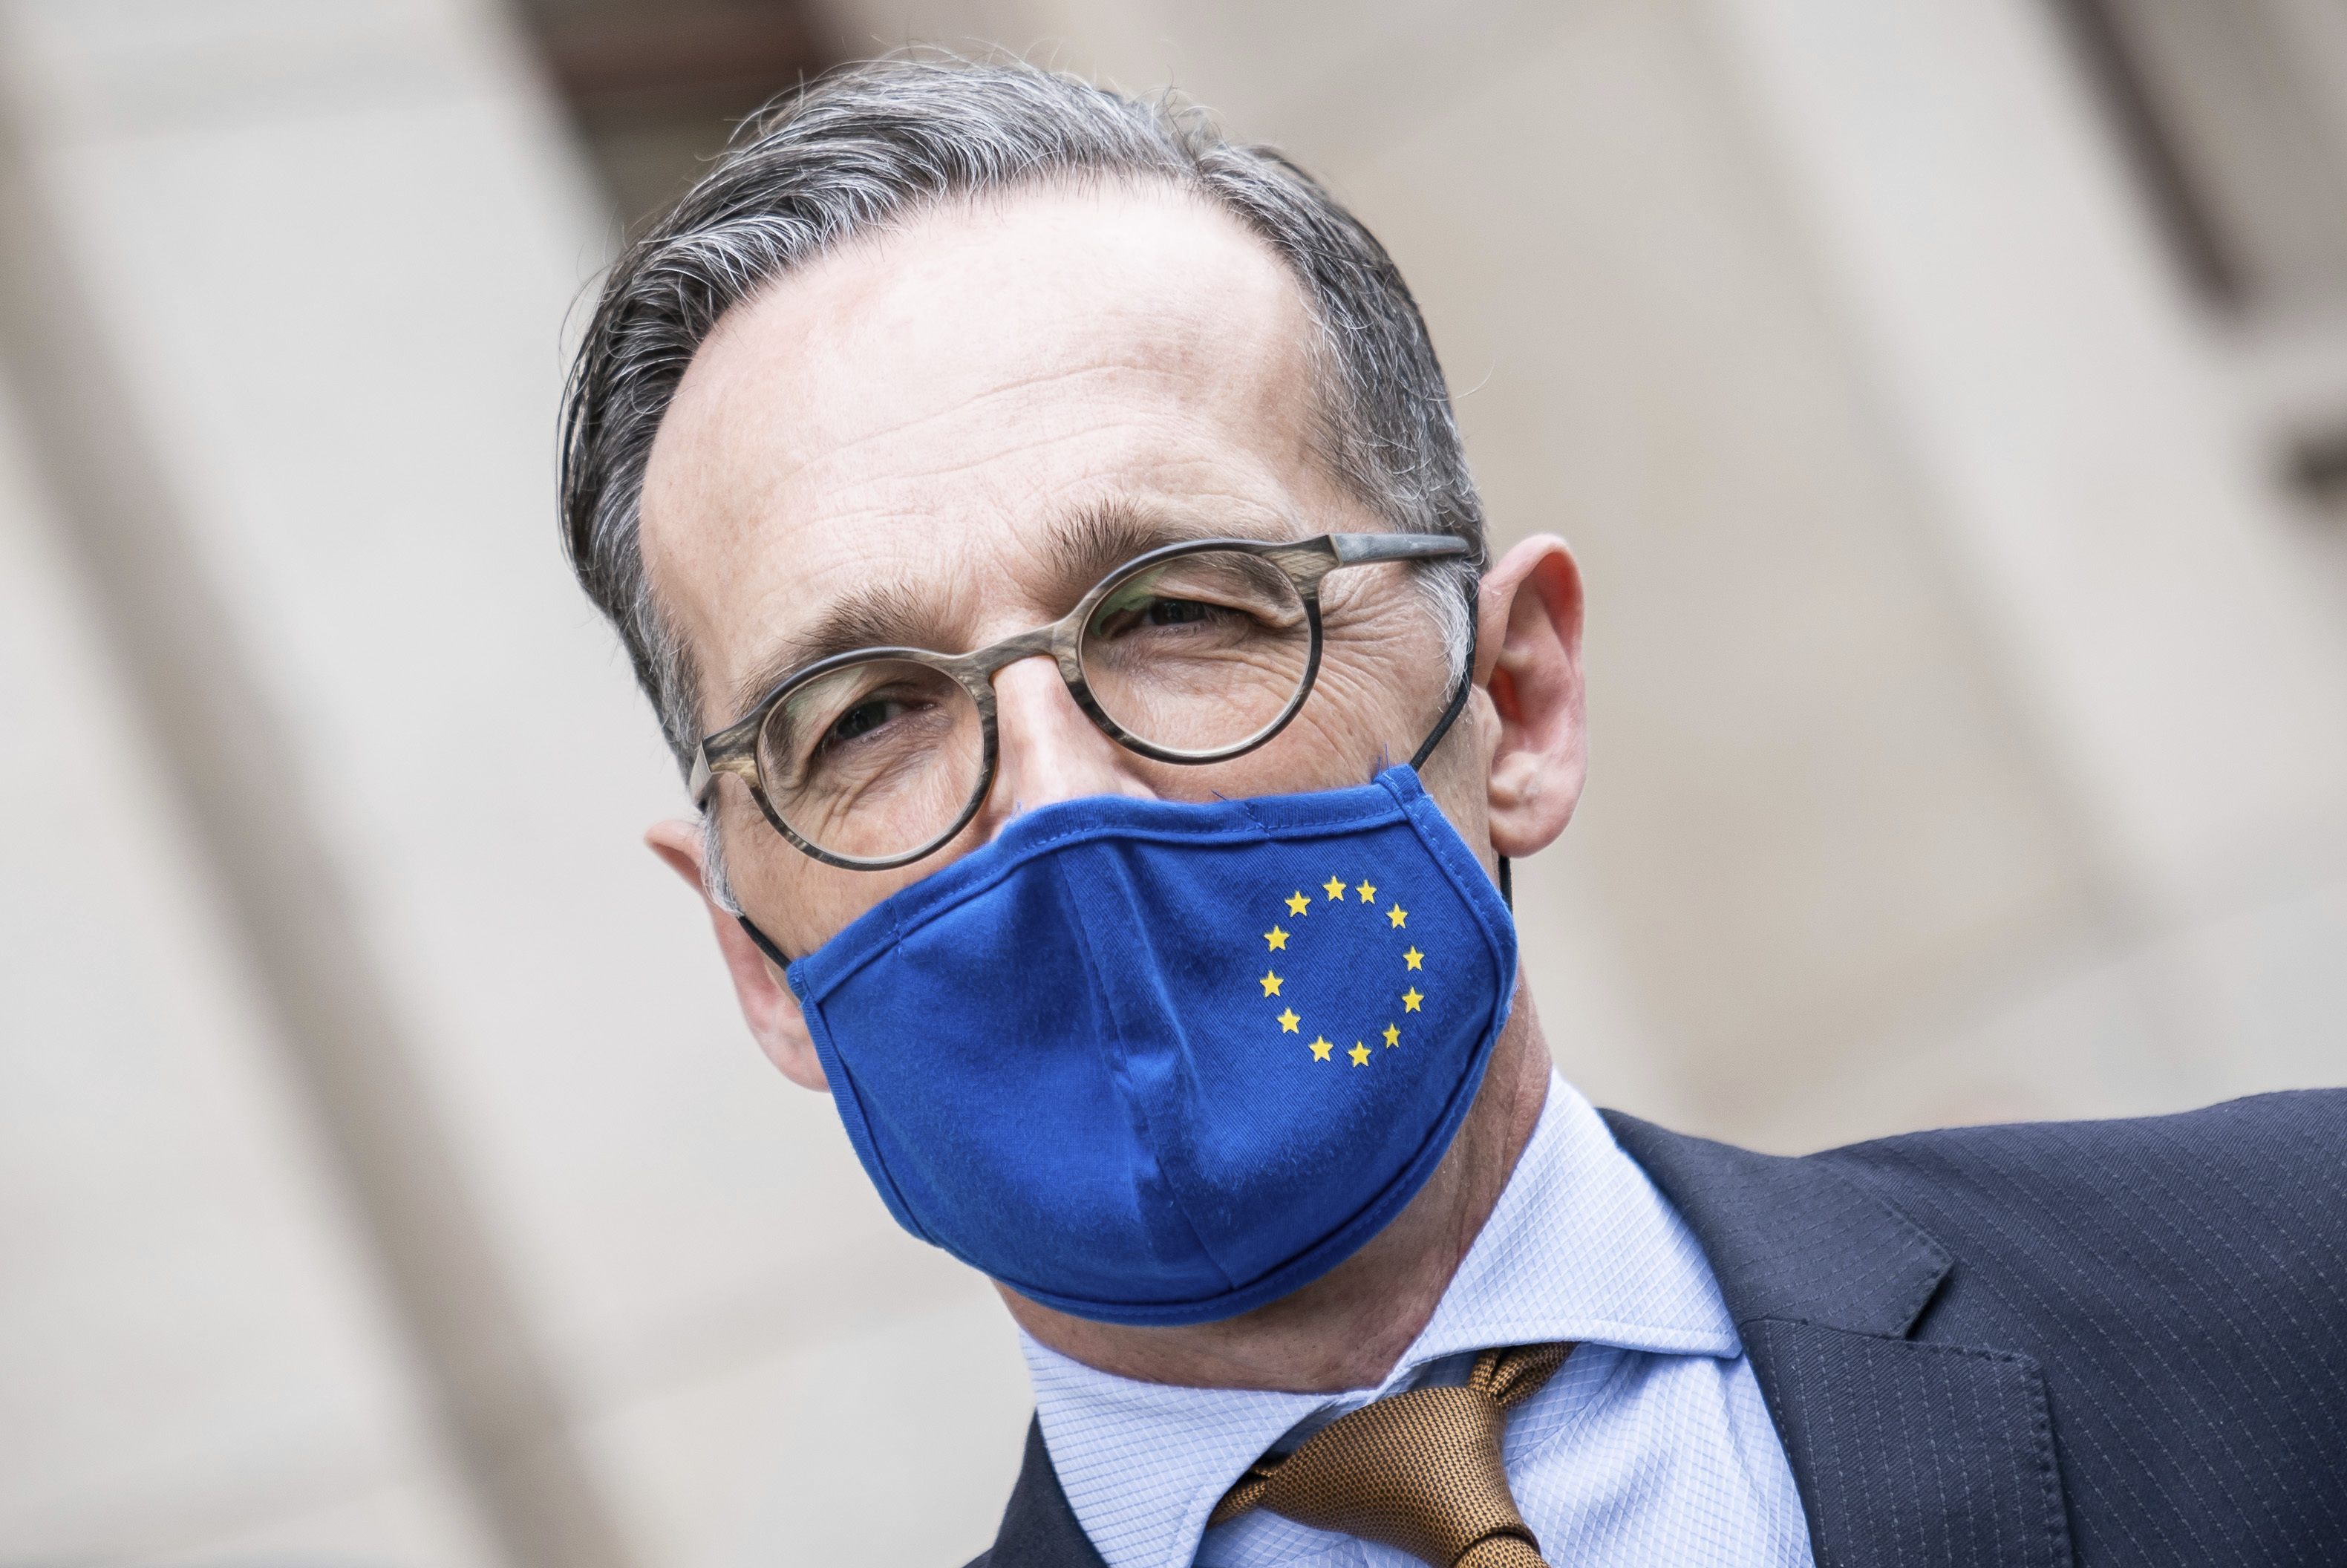 German Foreign Minister Heiko Maas, wears a face mask to protect against the coronavirus following a meeting with his Italian counterpart Di Maio at the Foreign Office in Berlin, Germany, June 5, 2020.